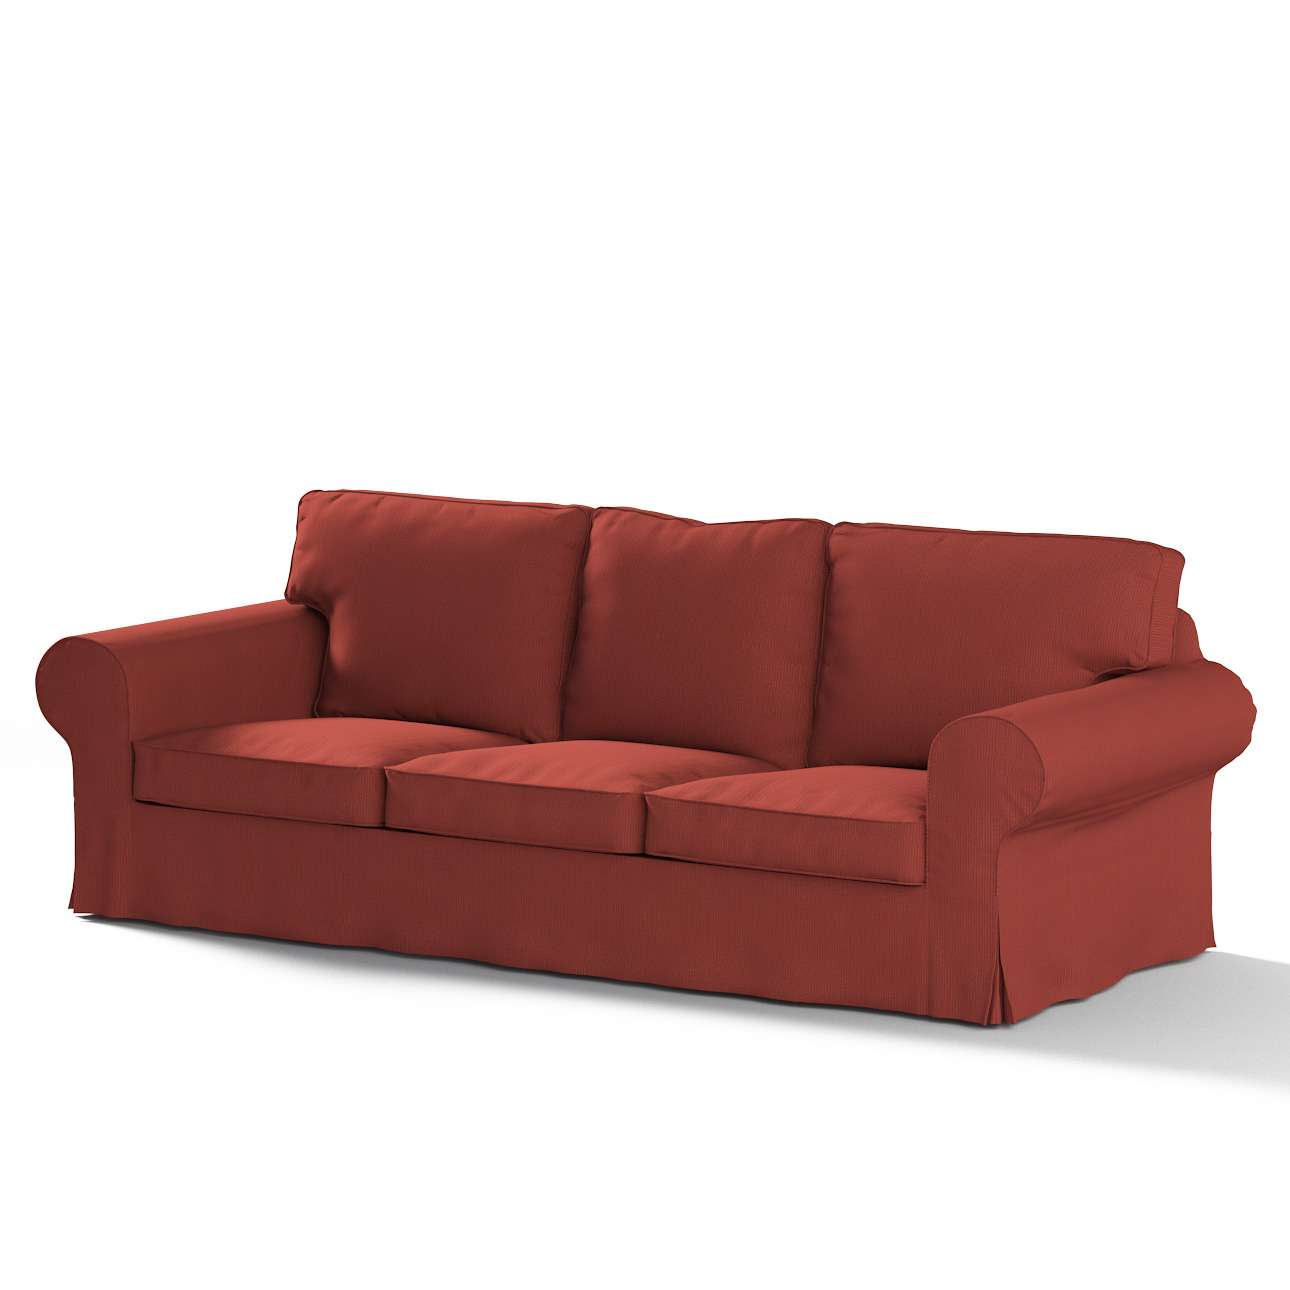 ektorp 3 seater sofa bed cover for model on sale in ikea since 2013